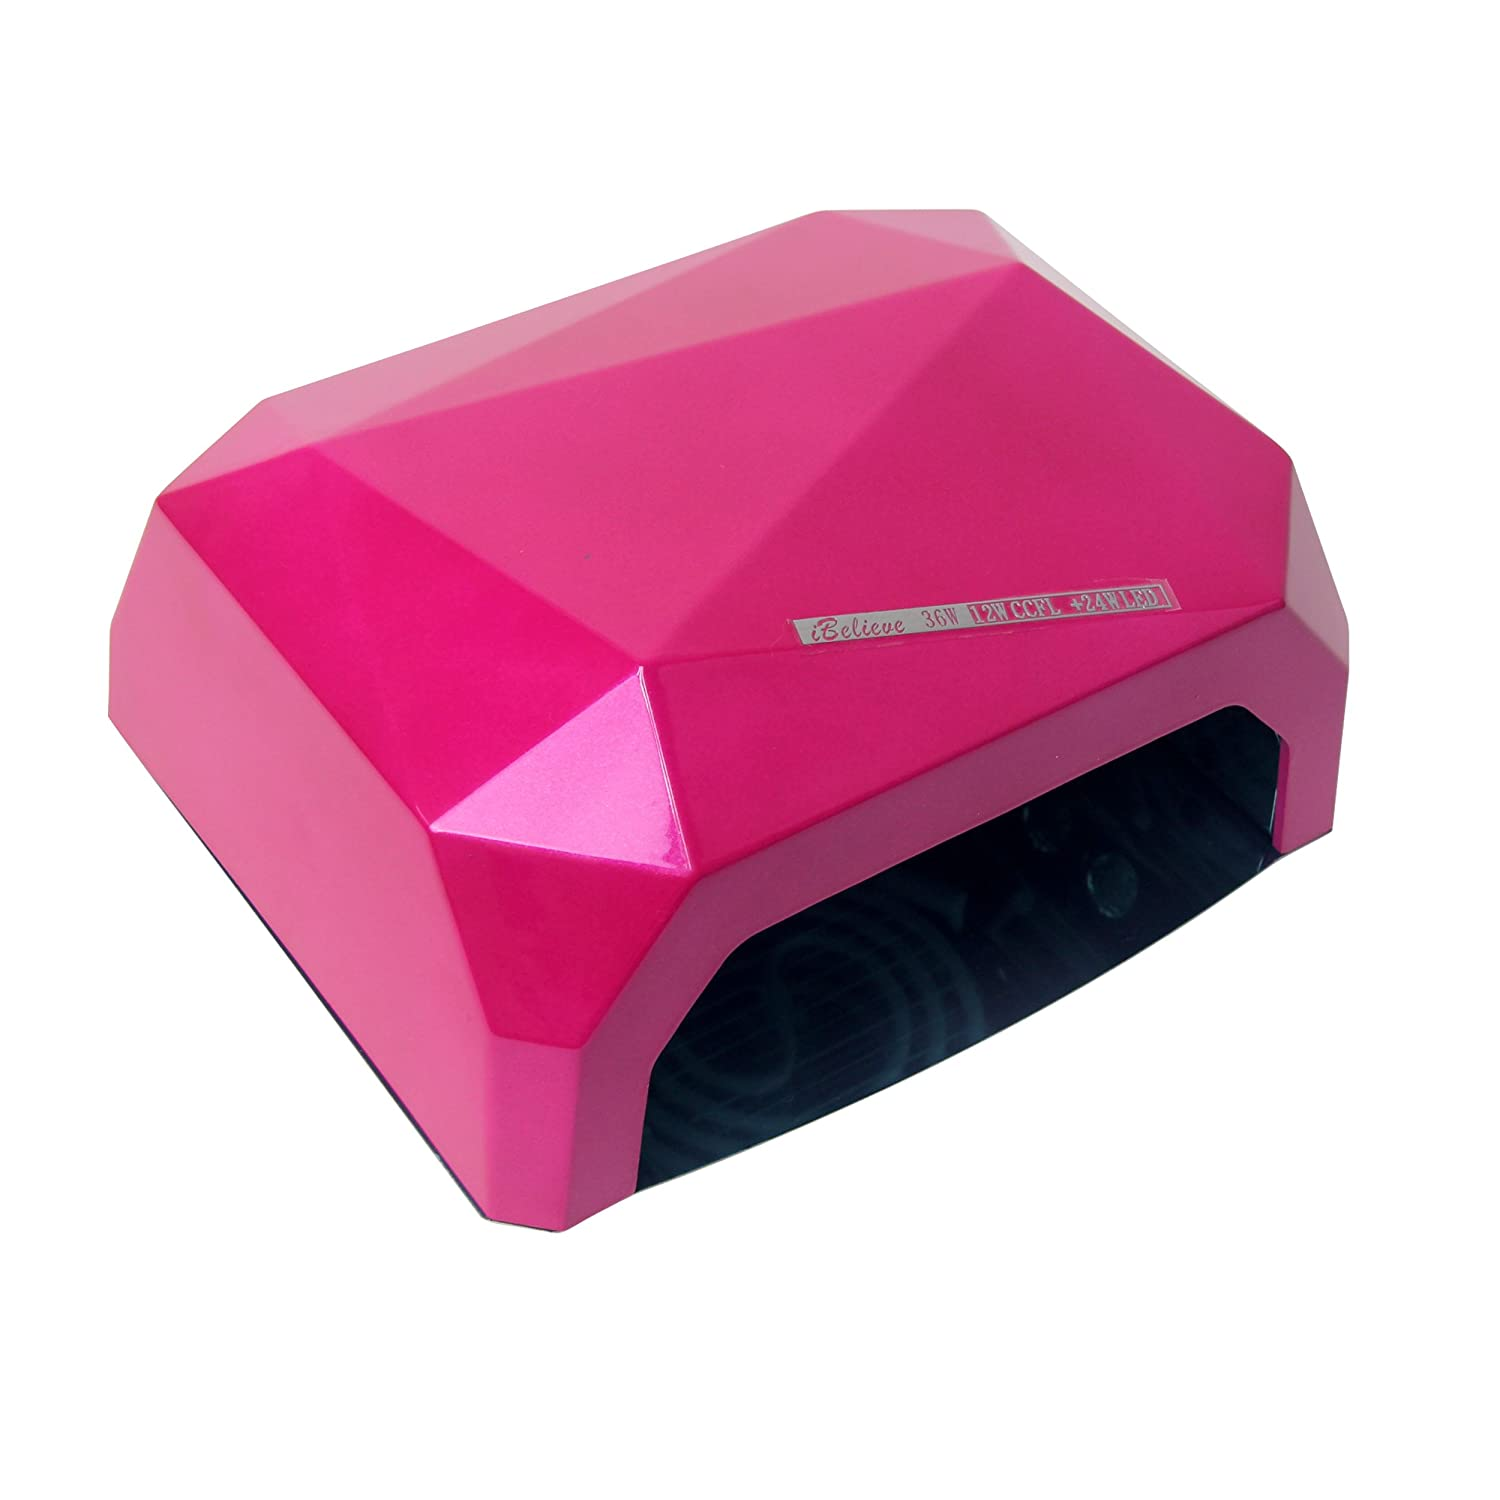 Signstek 36W LED UV Nail Dryer Gel Curing Lamp, 30S 60S 90S Fast Dry, for Home Use or Salon (Champagne)